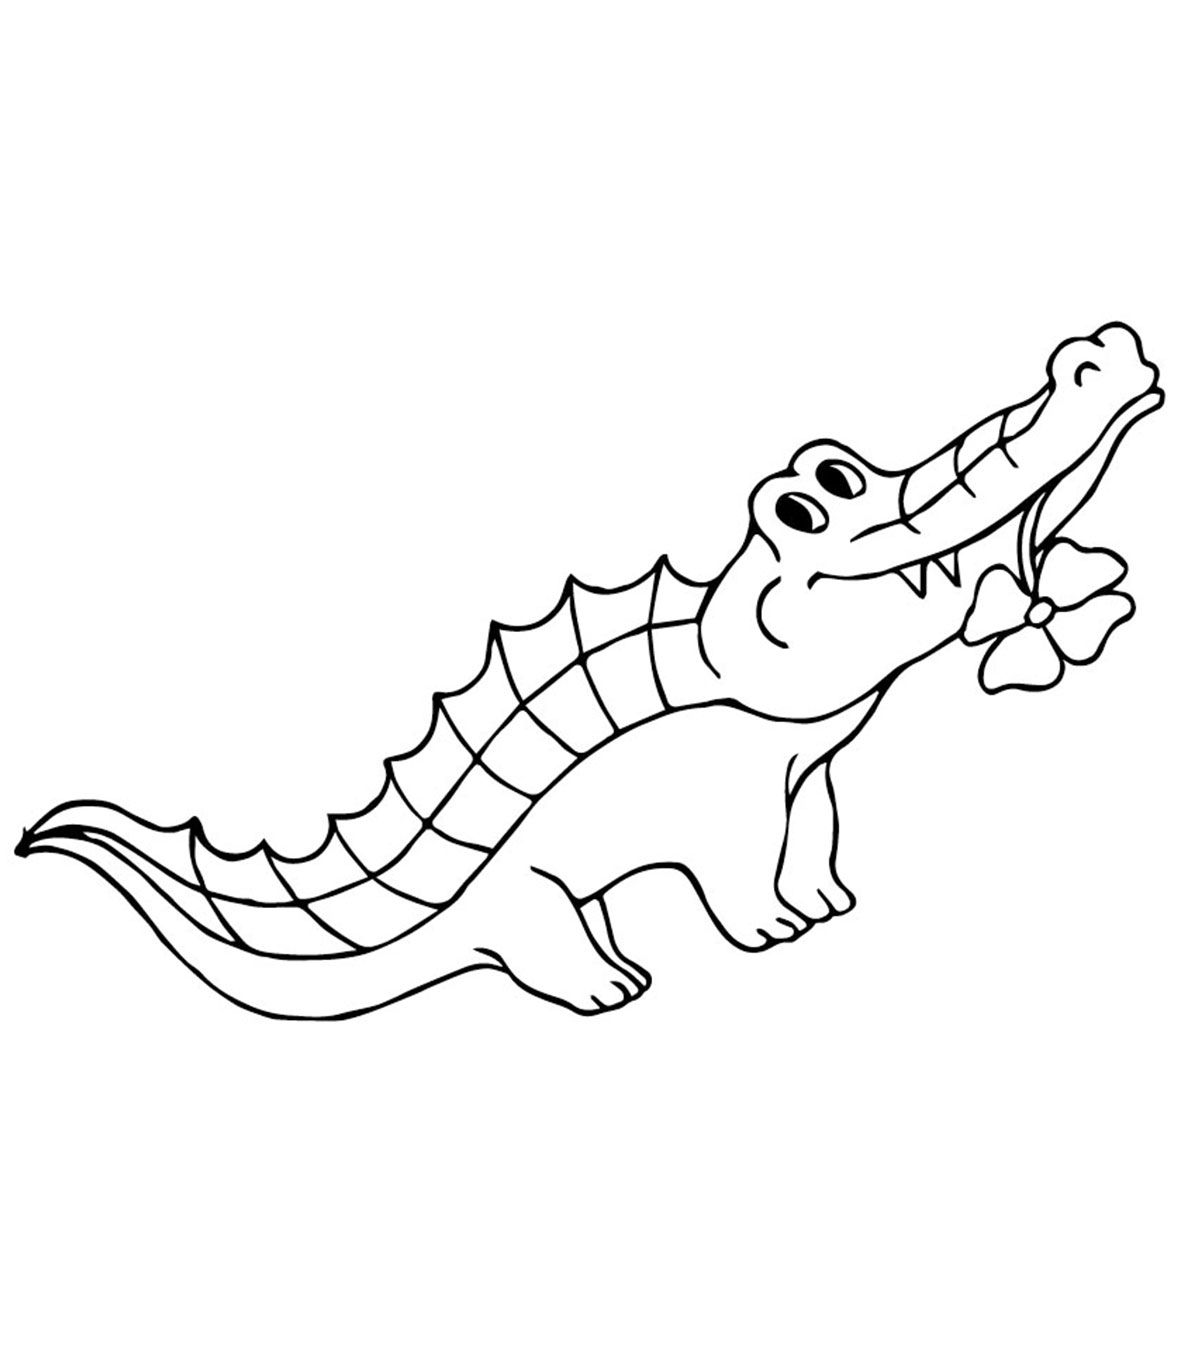 Cute Alligator Coloring Pages Animal Coloring Pages Coloring Pages Coloring Pages For Kids